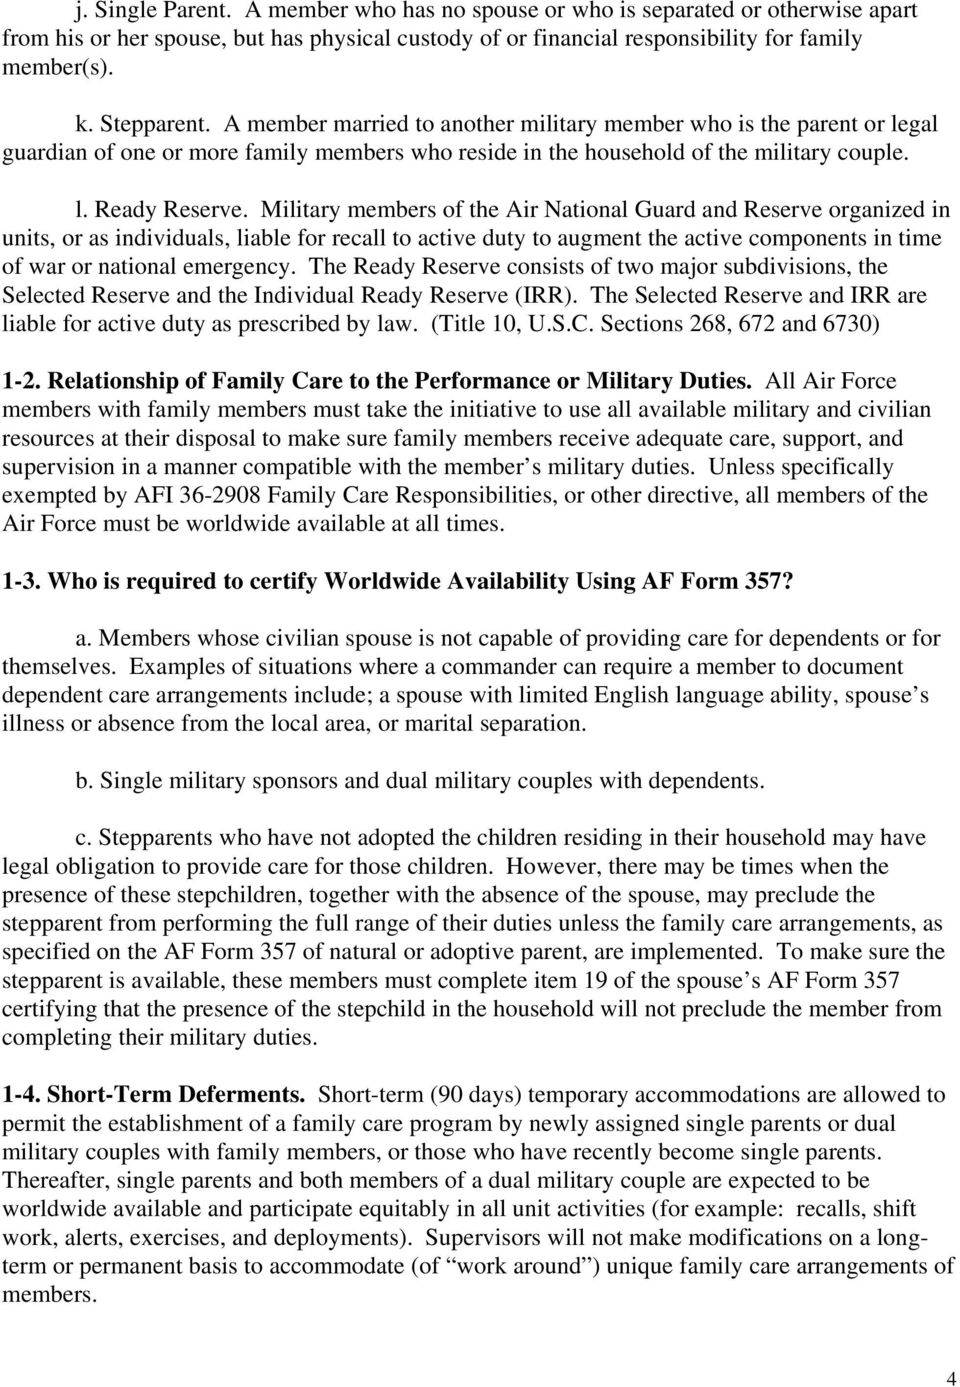 Military members of the Air National Guard and Reserve organized in units, or as individuals, liable for recall to active duty to augment the active components in time of war or national emergency.